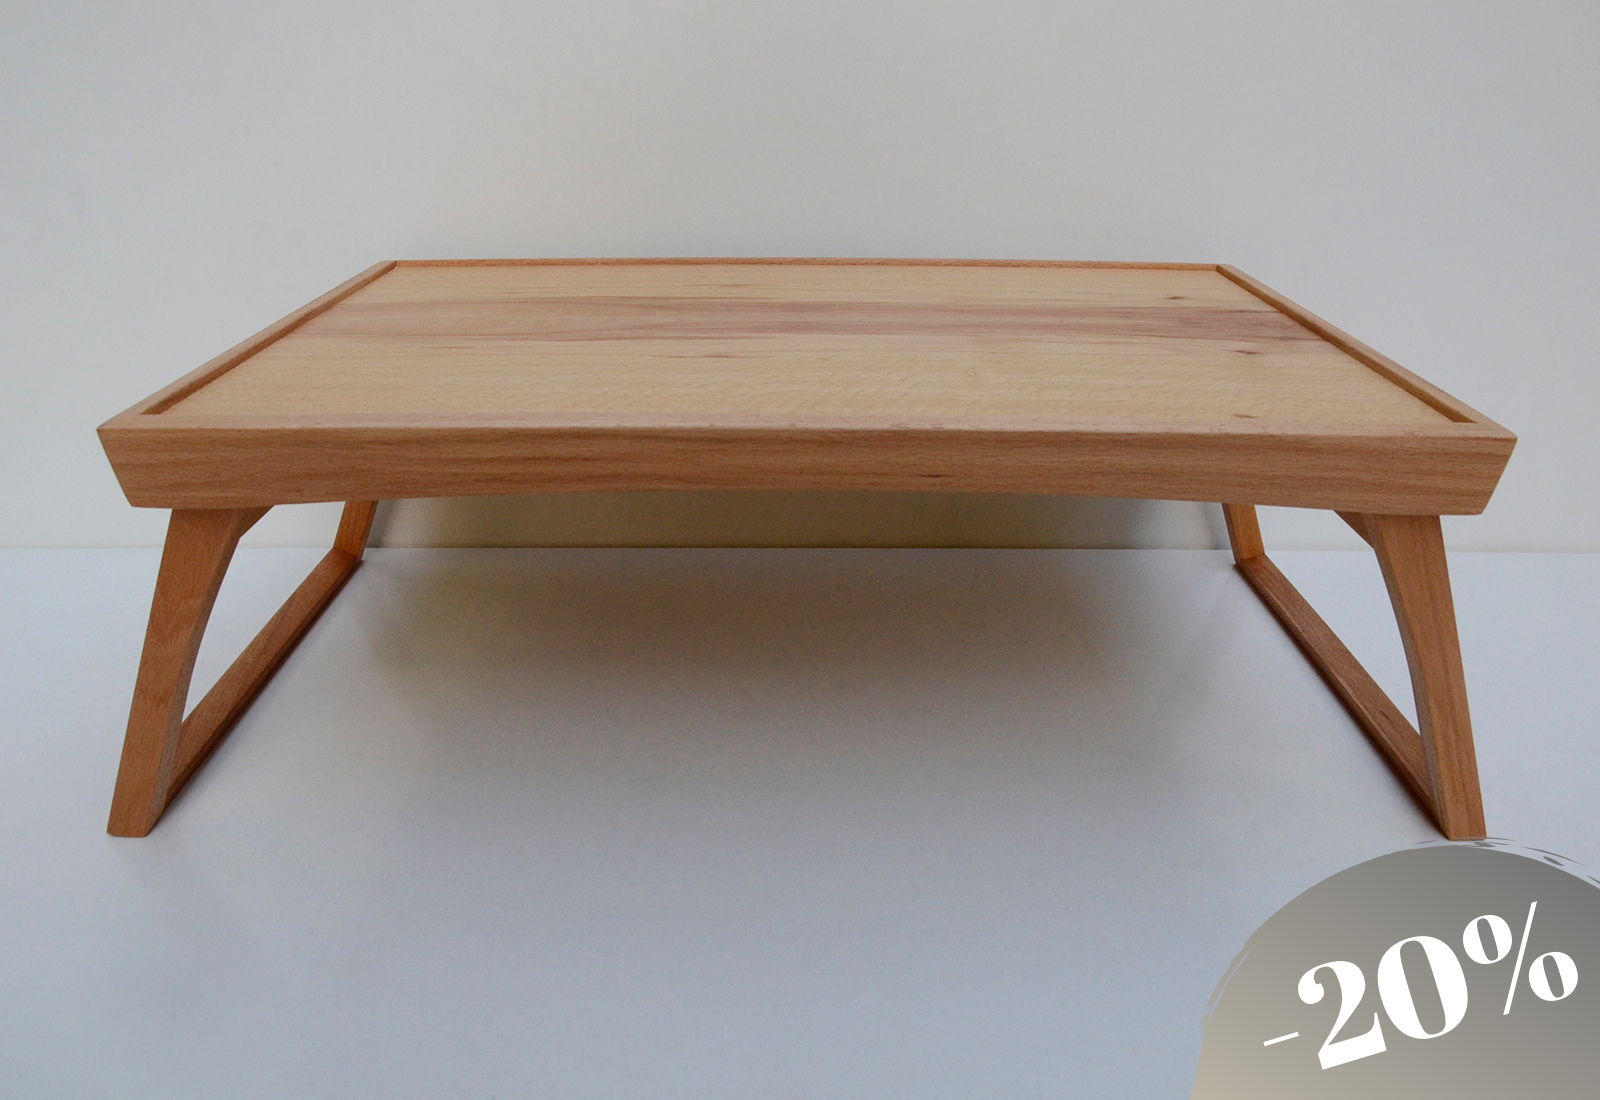 DÉSIRÉE bed tray table - divers wood types